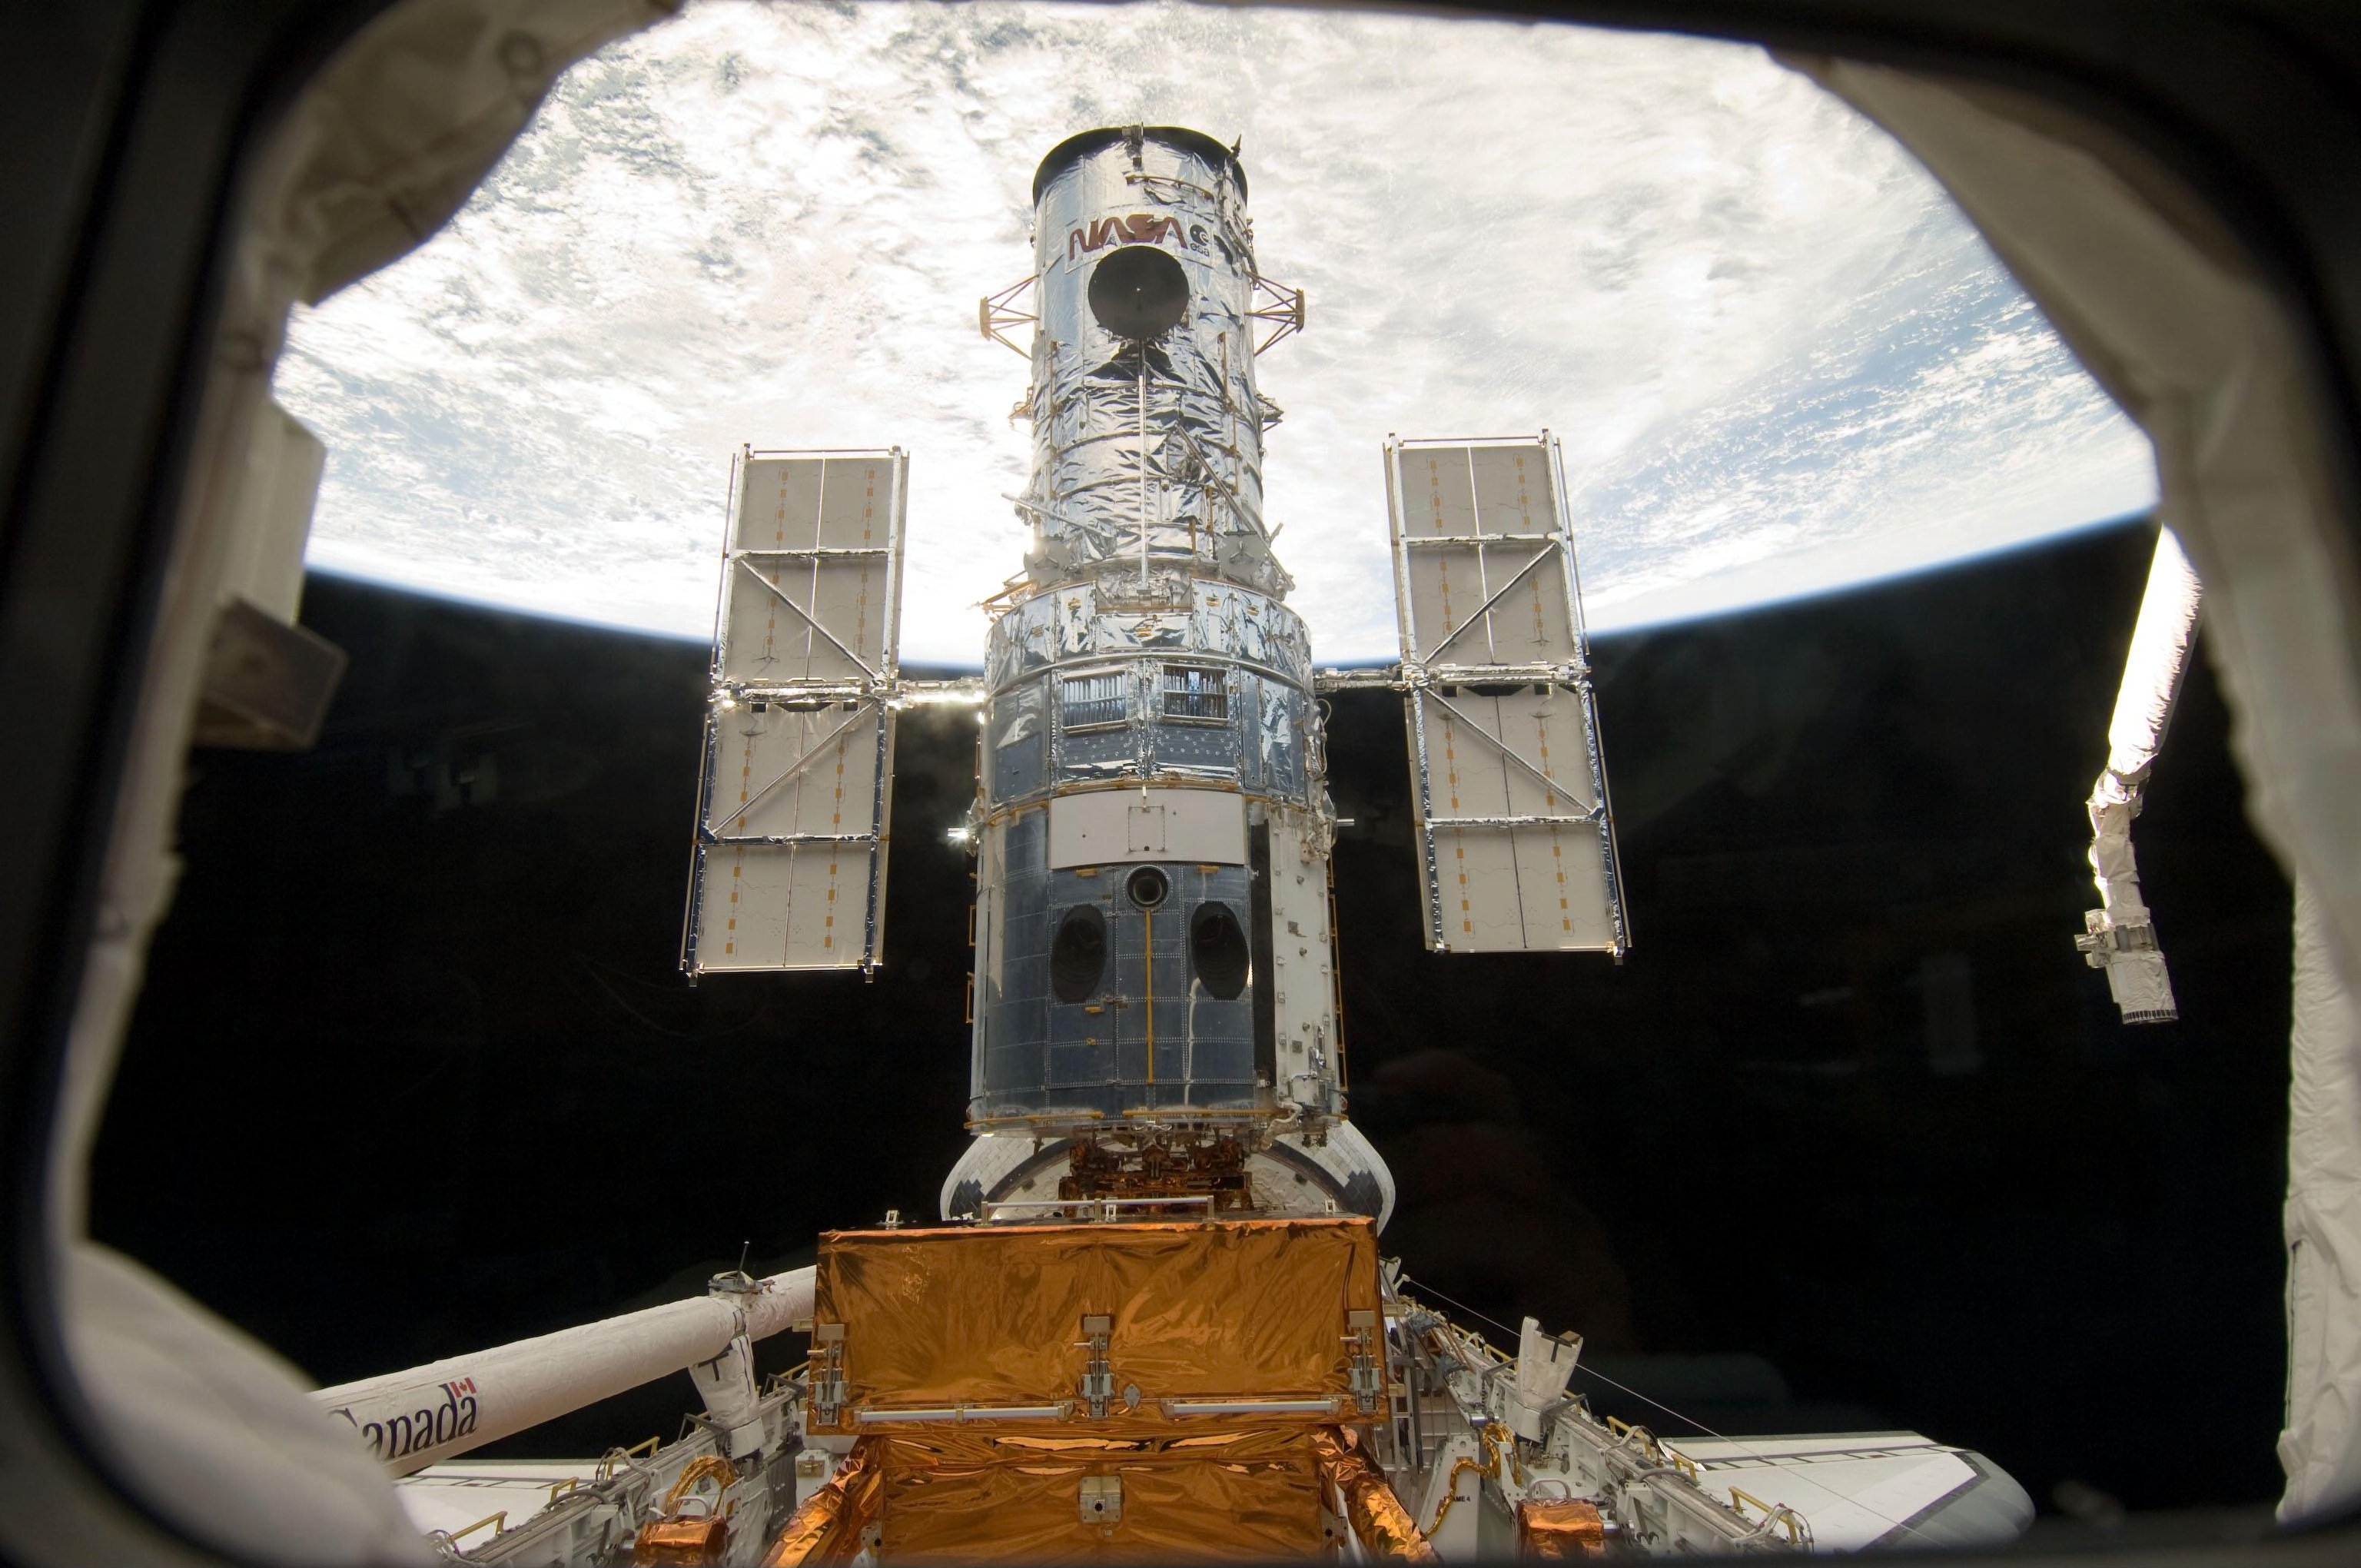 April 1990 - Hubble Space Telescope (HST) Launched | NASA